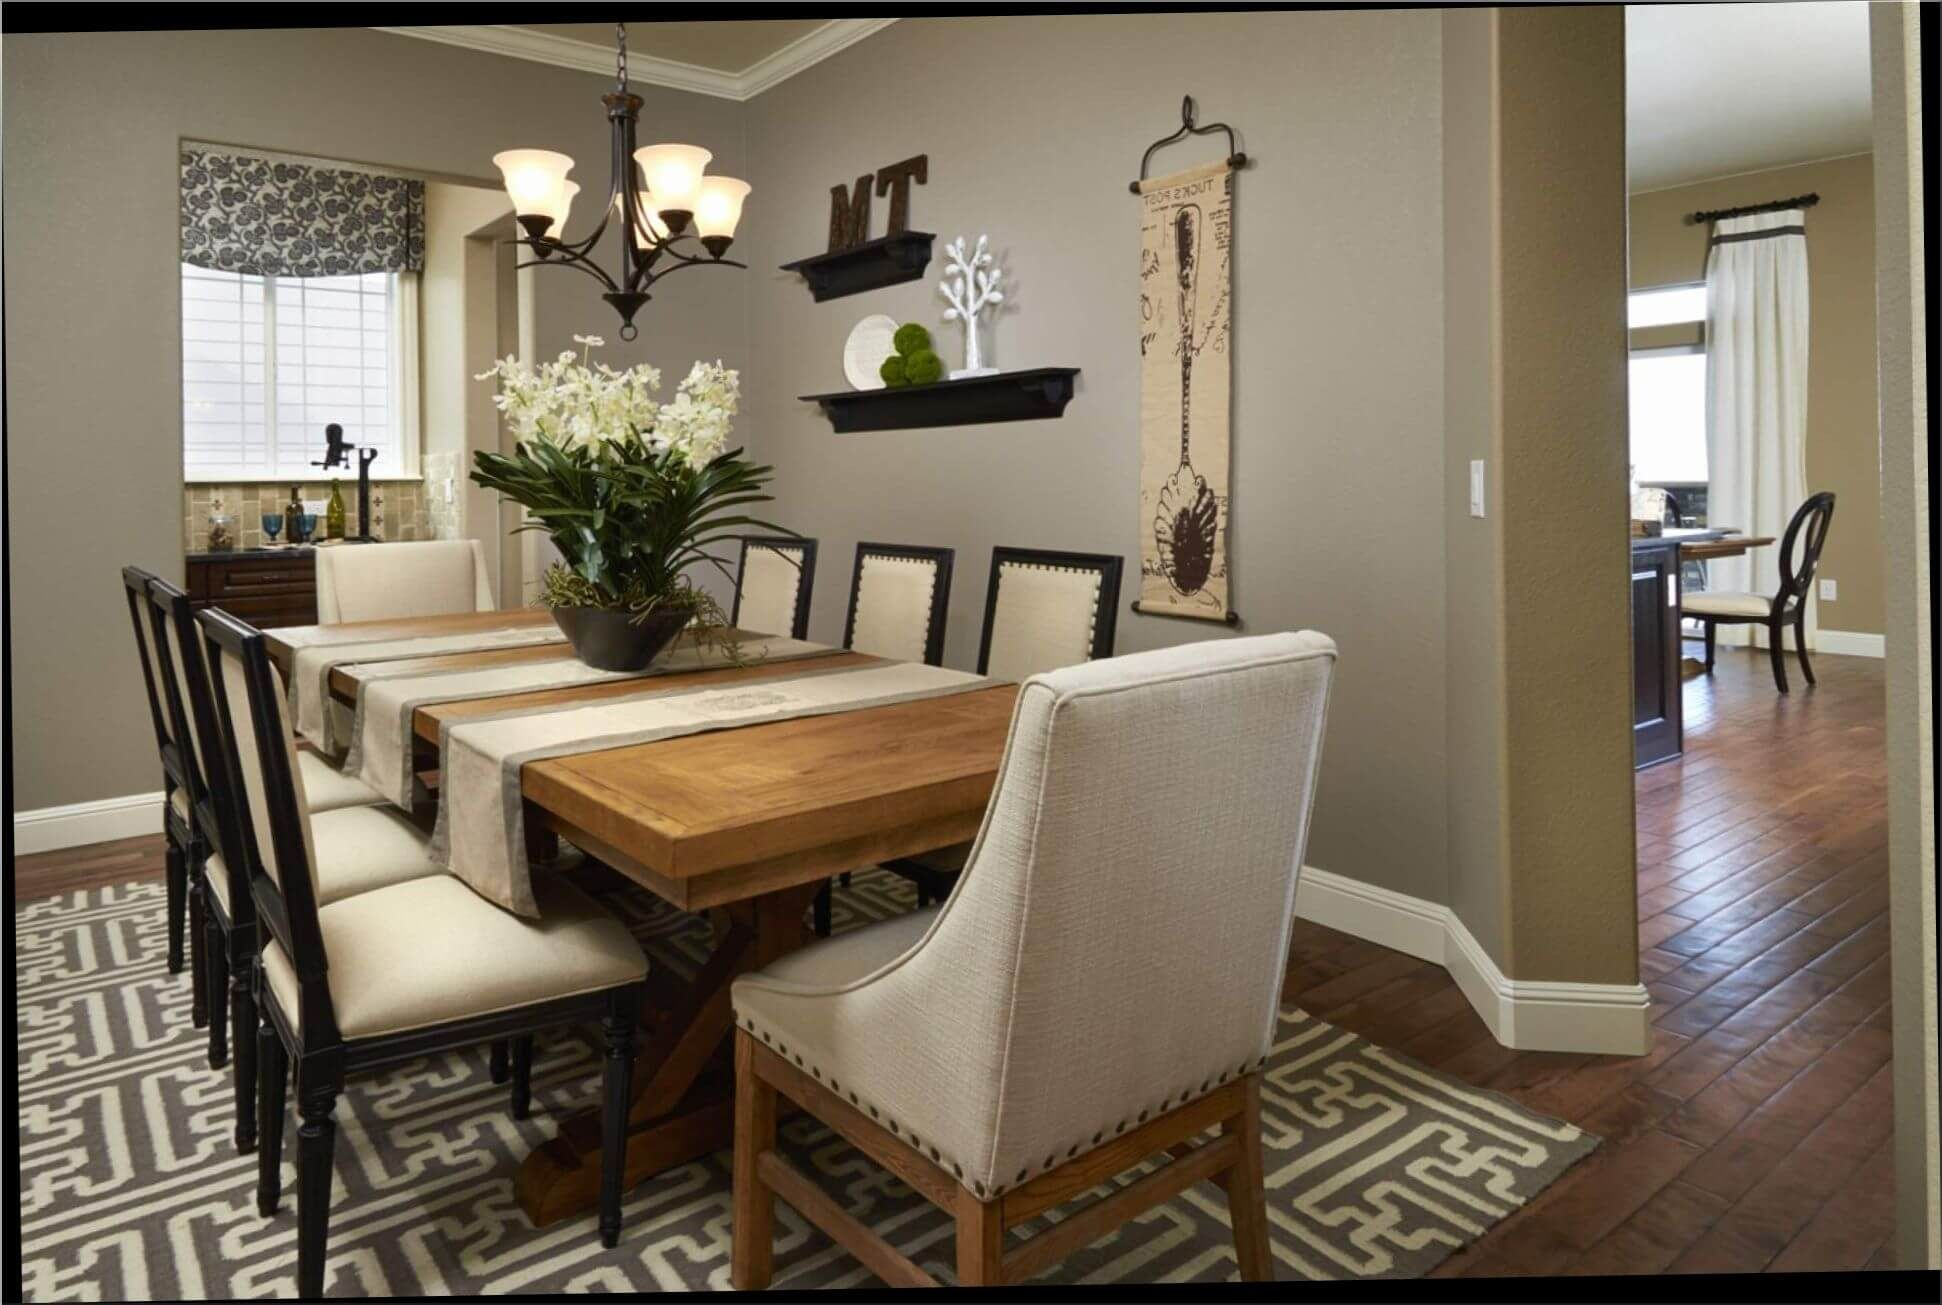 how to decorate dining room table 1942Ã 1305 decor